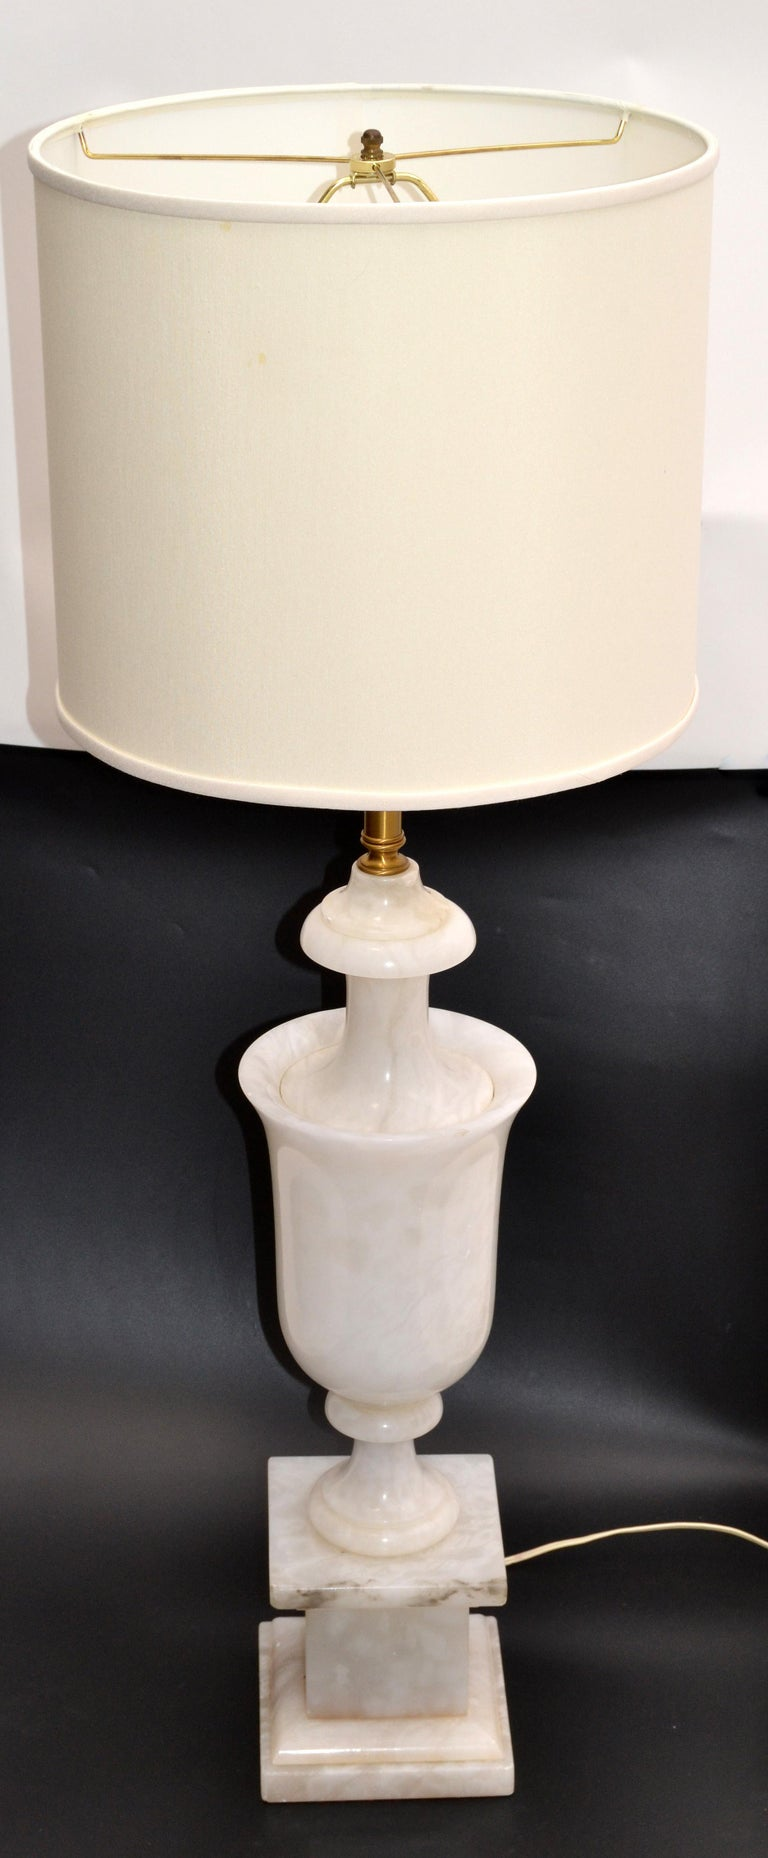 Art Deco Italian White Carrara Marble Hand Carved Table Lamp In Good Condition For Sale In Miami, FL